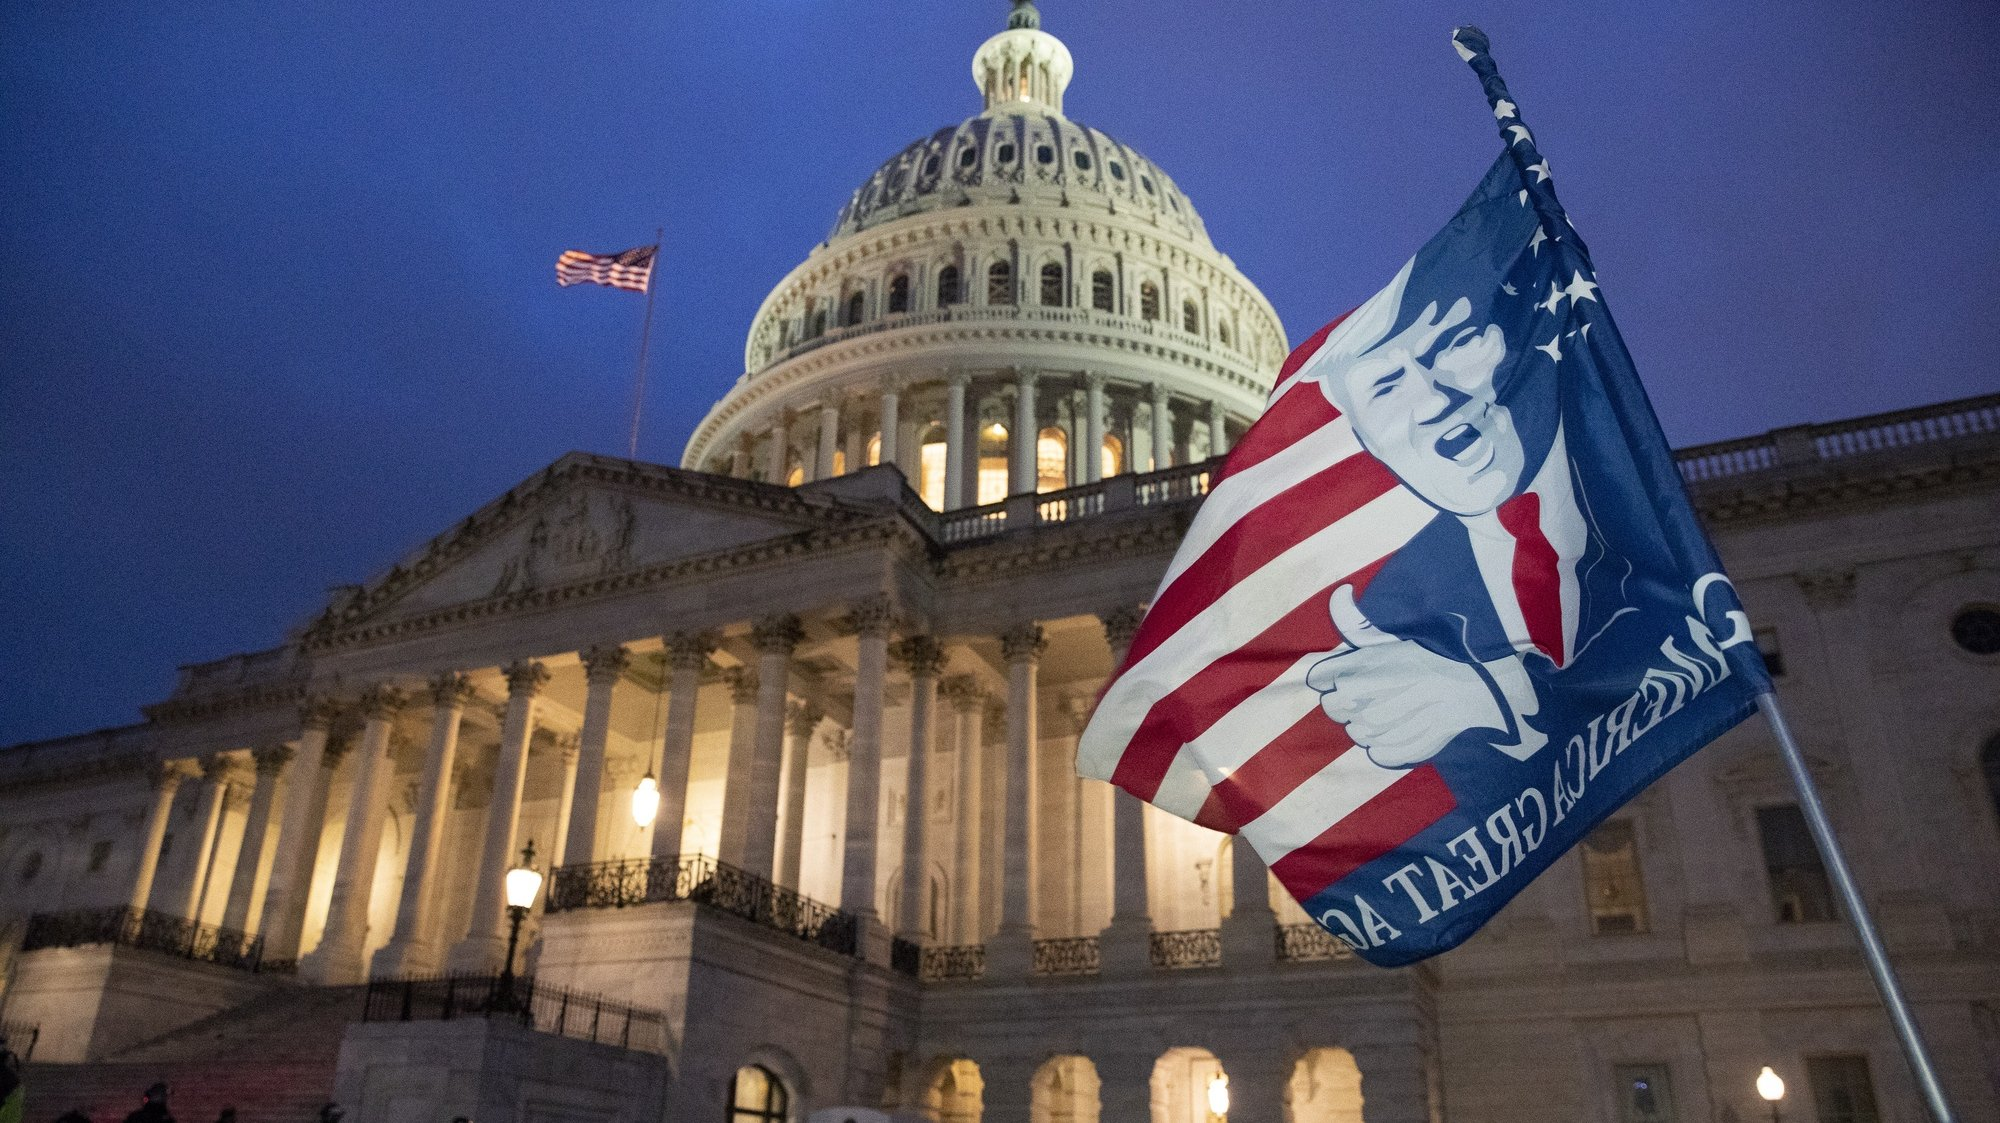 epa08923726 A flag is left by a Trump supporter at the US Capitol at dusk as a curfew begins after pro-Trump protesters stormed the grounds leading to chaos, in Washington, DC, USA, 06 January 2021. Various groups of Trump supporters have broken into the US Capitol and rioted as Congress prepares to meet and certify the results of the 2020 US Presidential election.  EPA/MICHAEL REYNOLDS